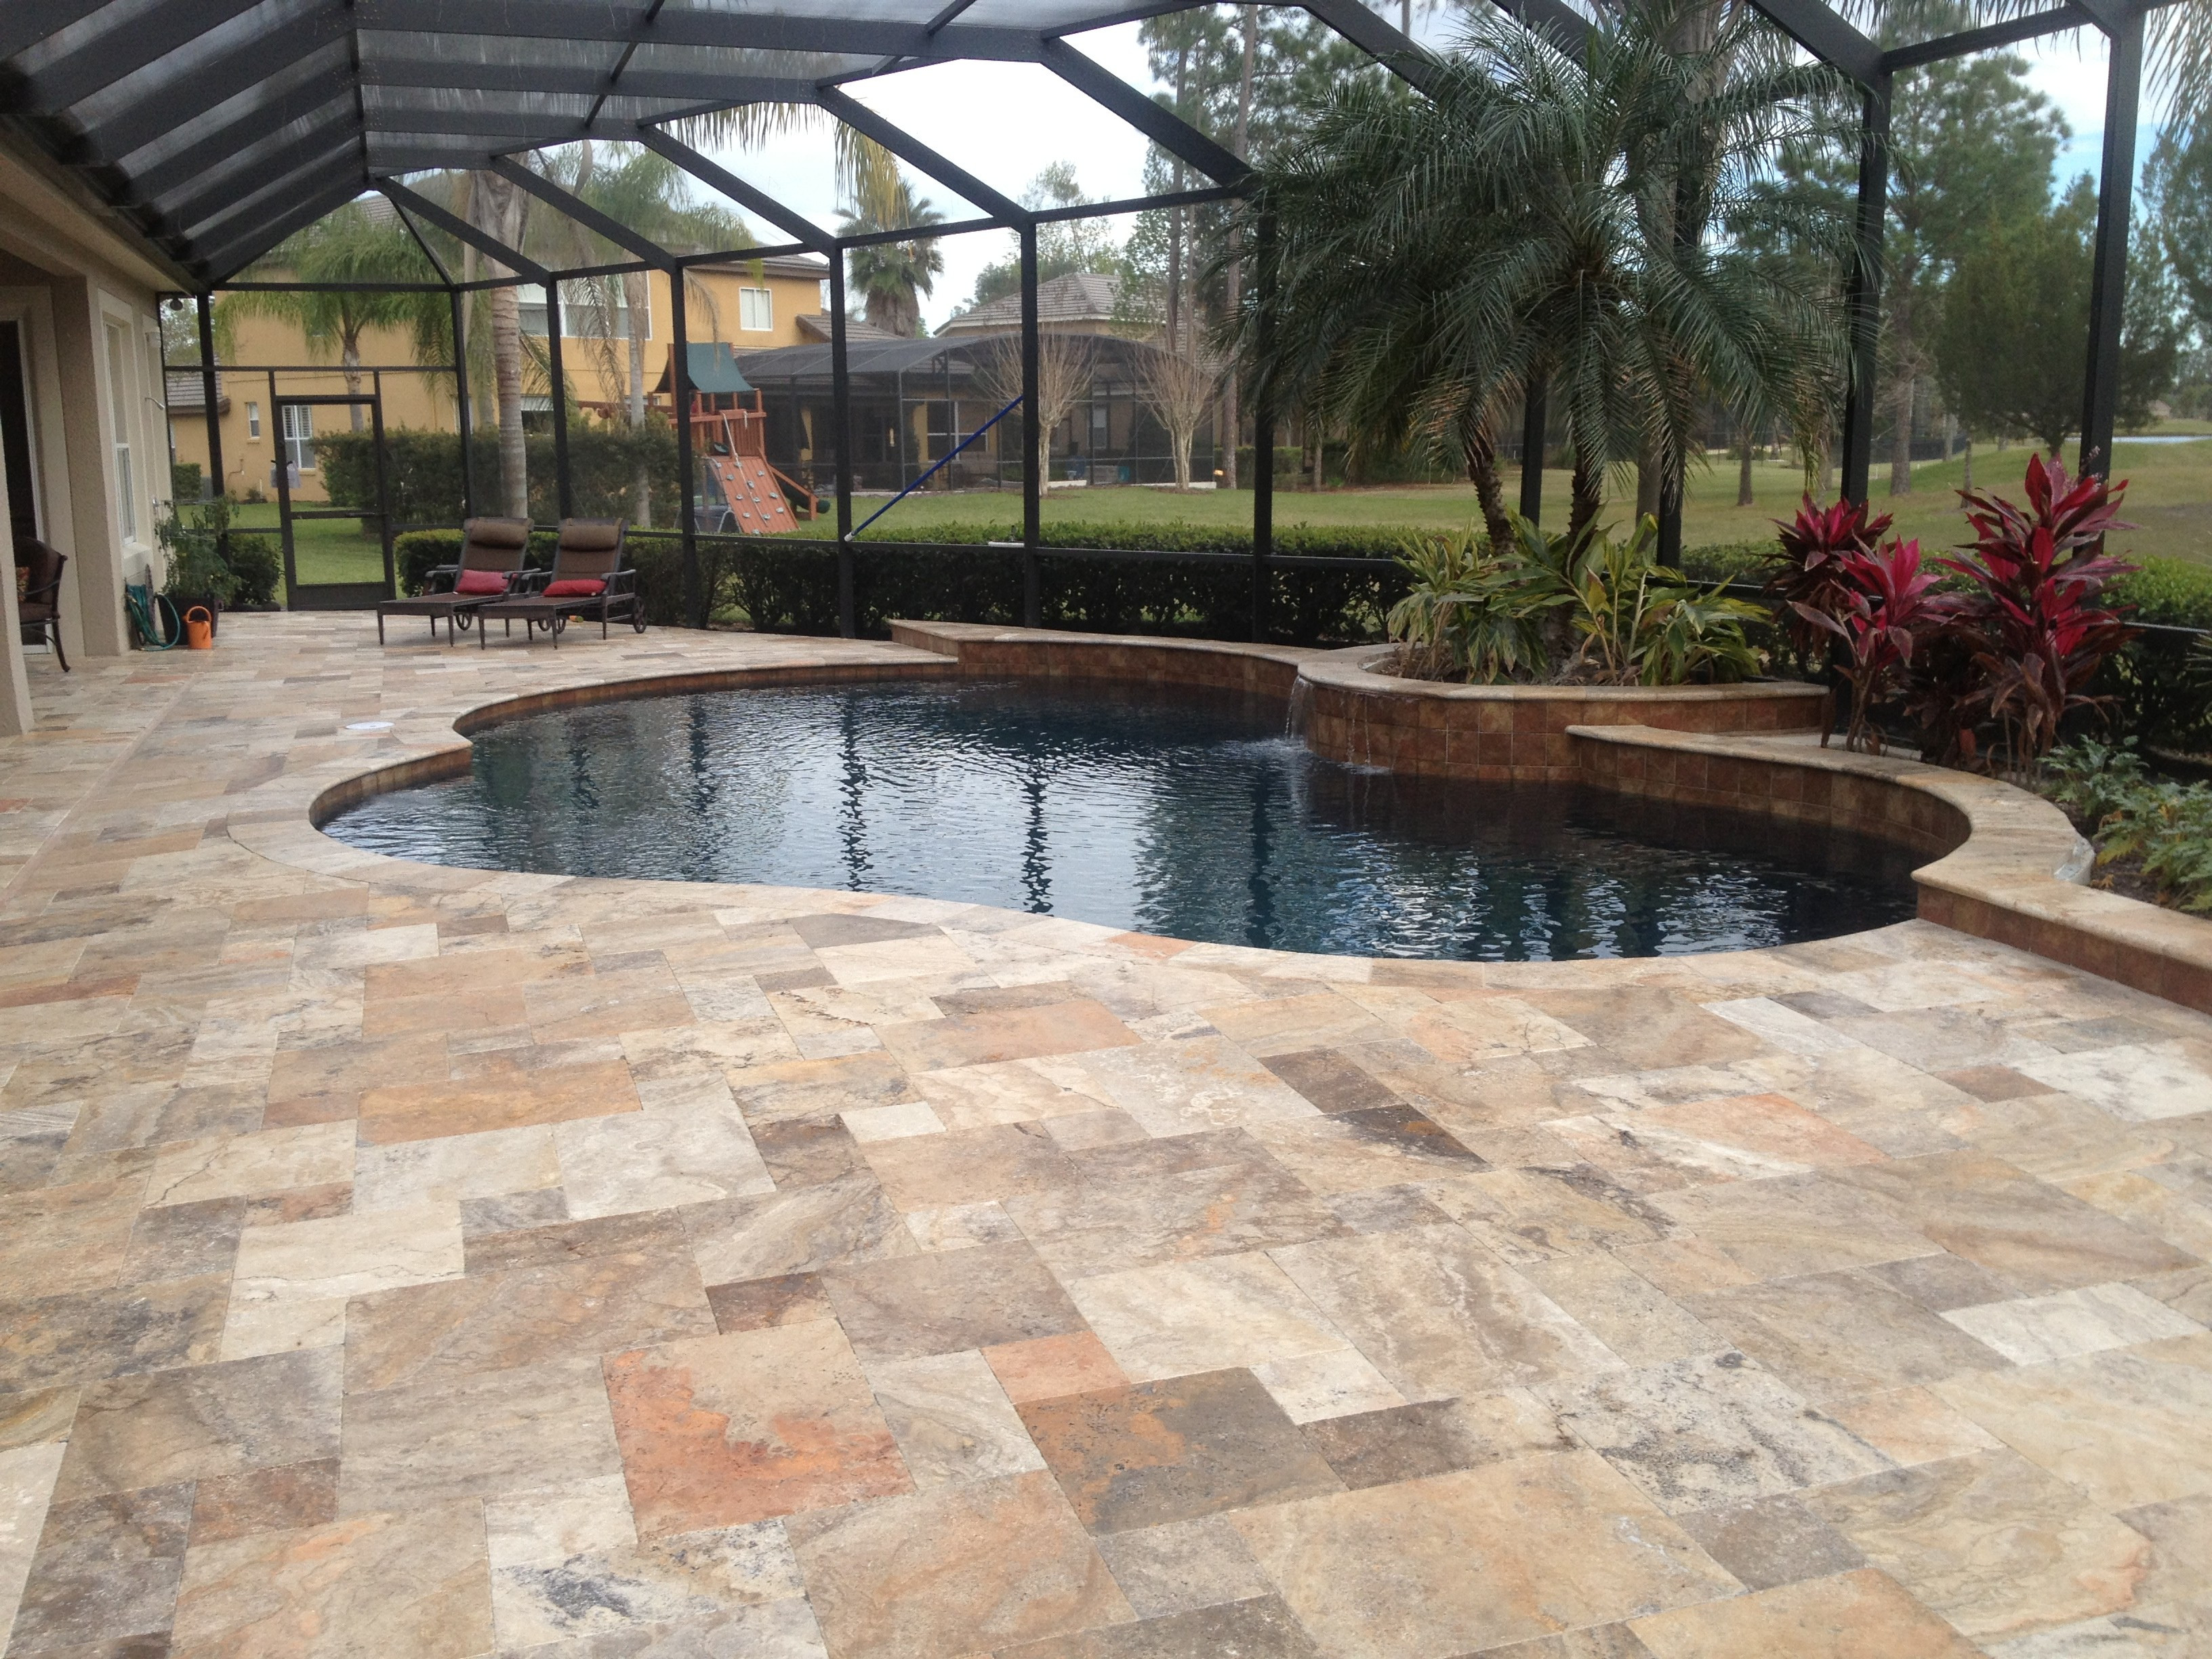 Best ideas about Outdoor Patio Tile . Save or Pin Best of Ceramic Tiles Outside kezCreative Now.